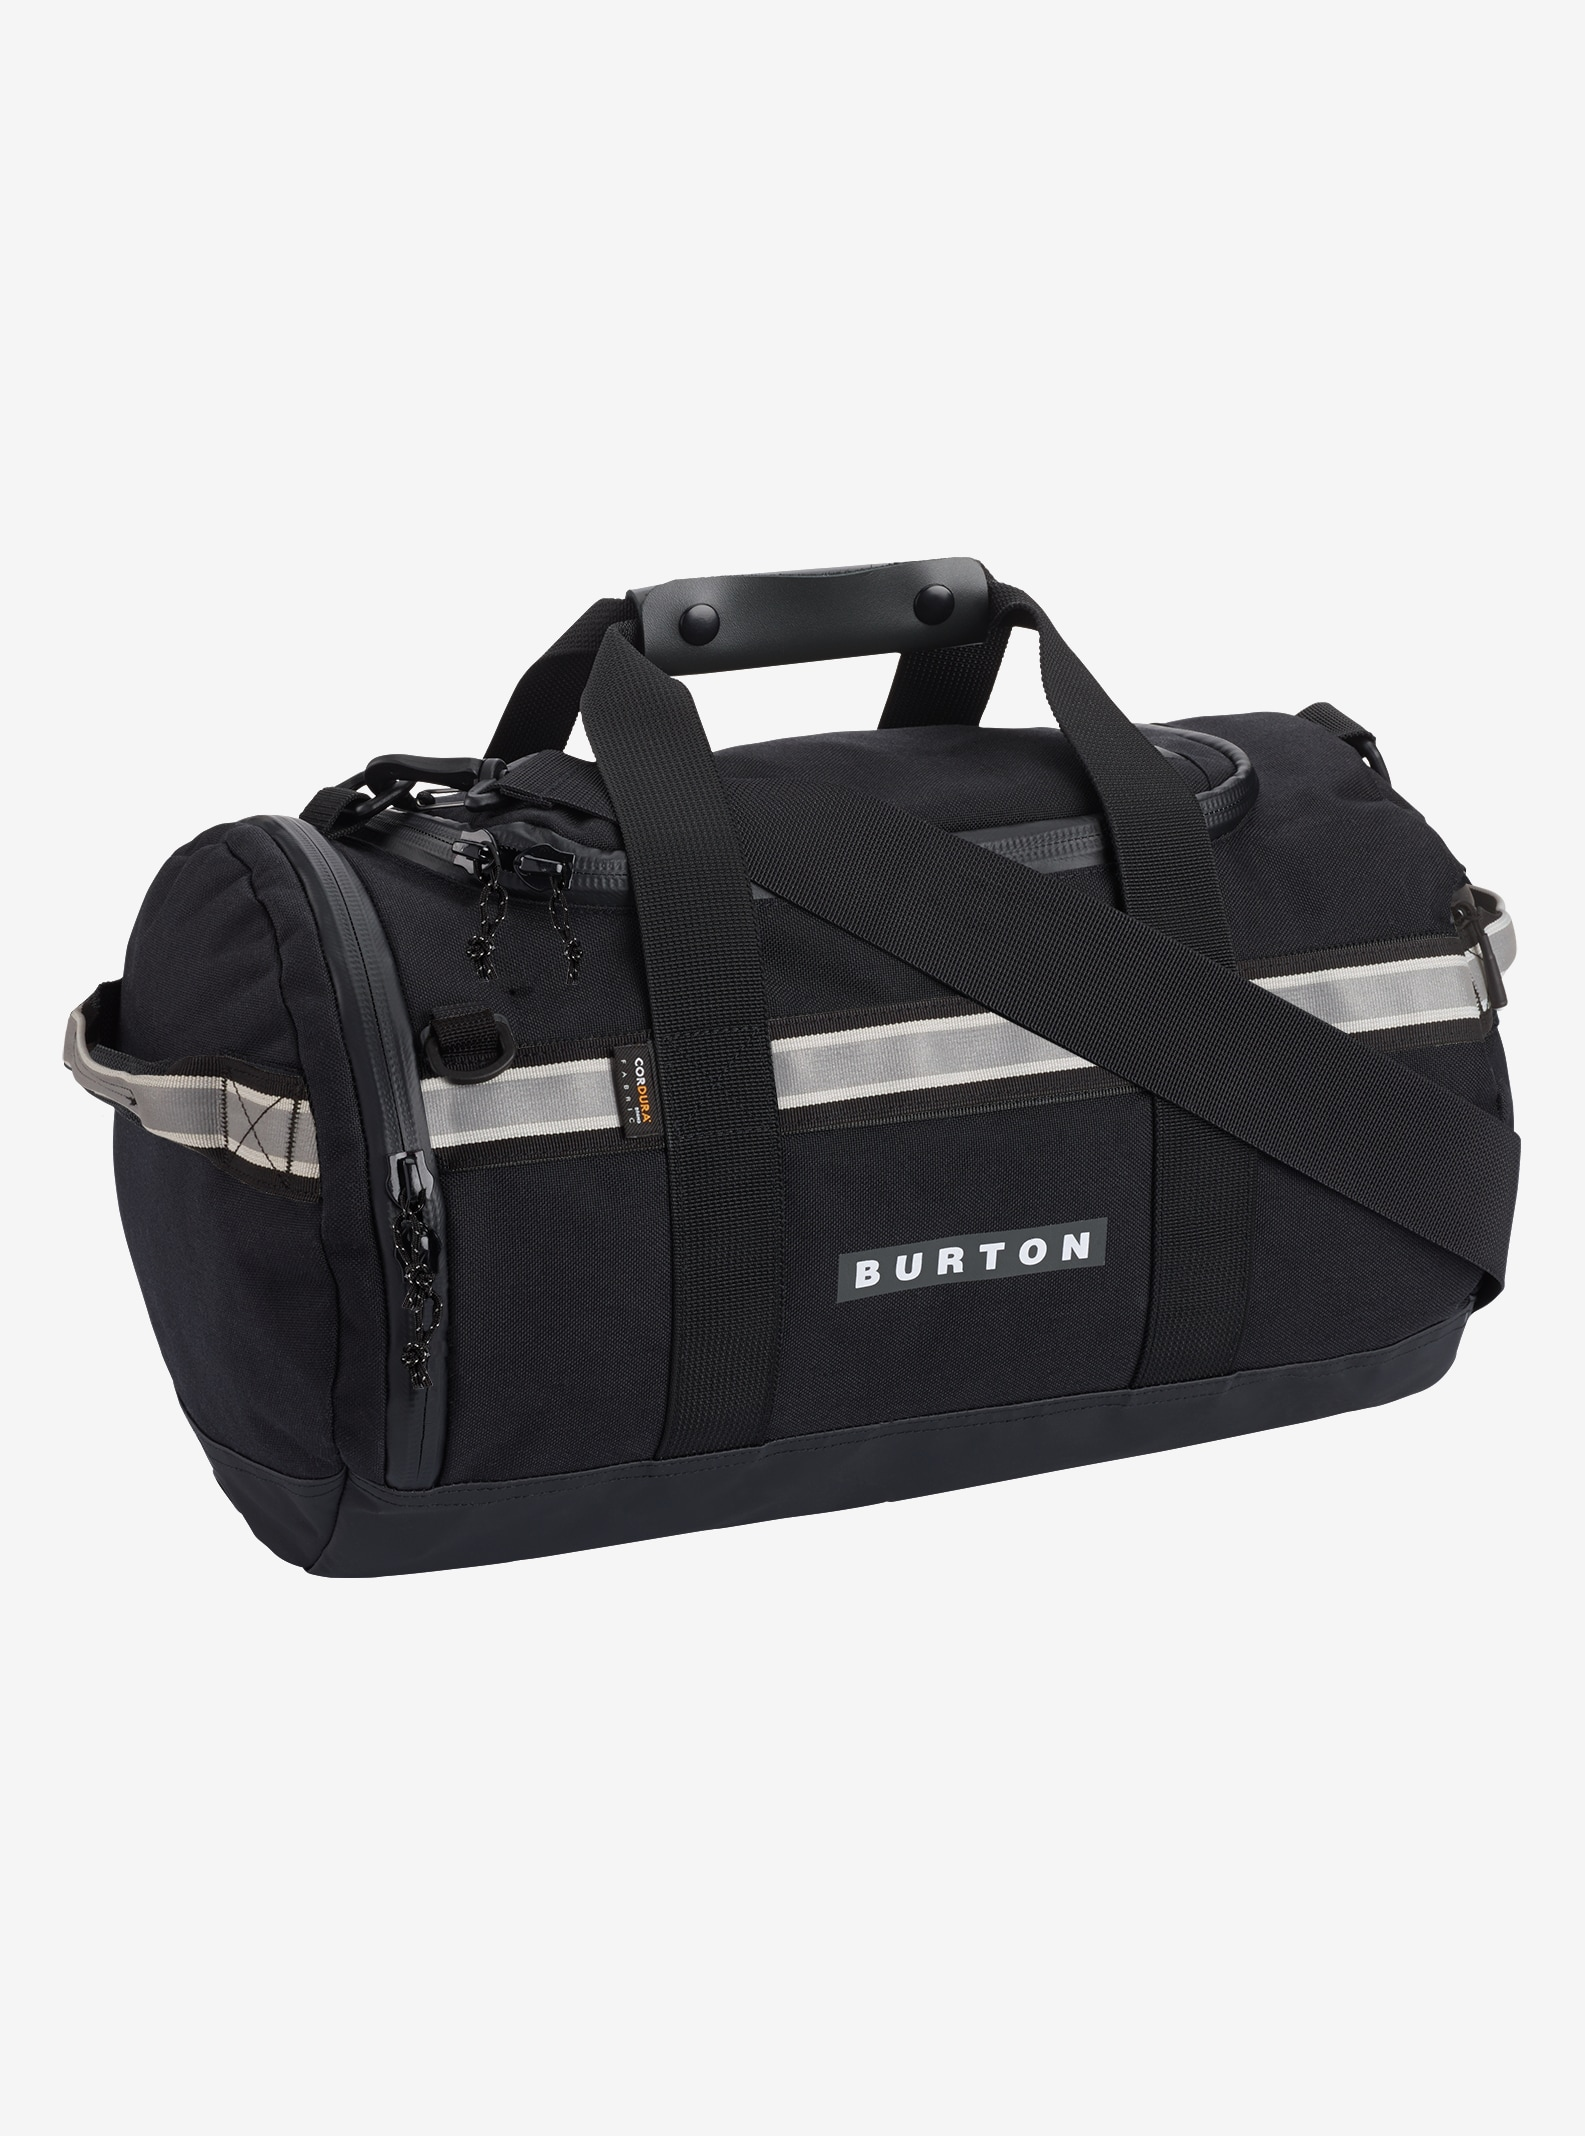 Burton Backhill Duffel Bag X-Small 25L shown in True Black Cordura®